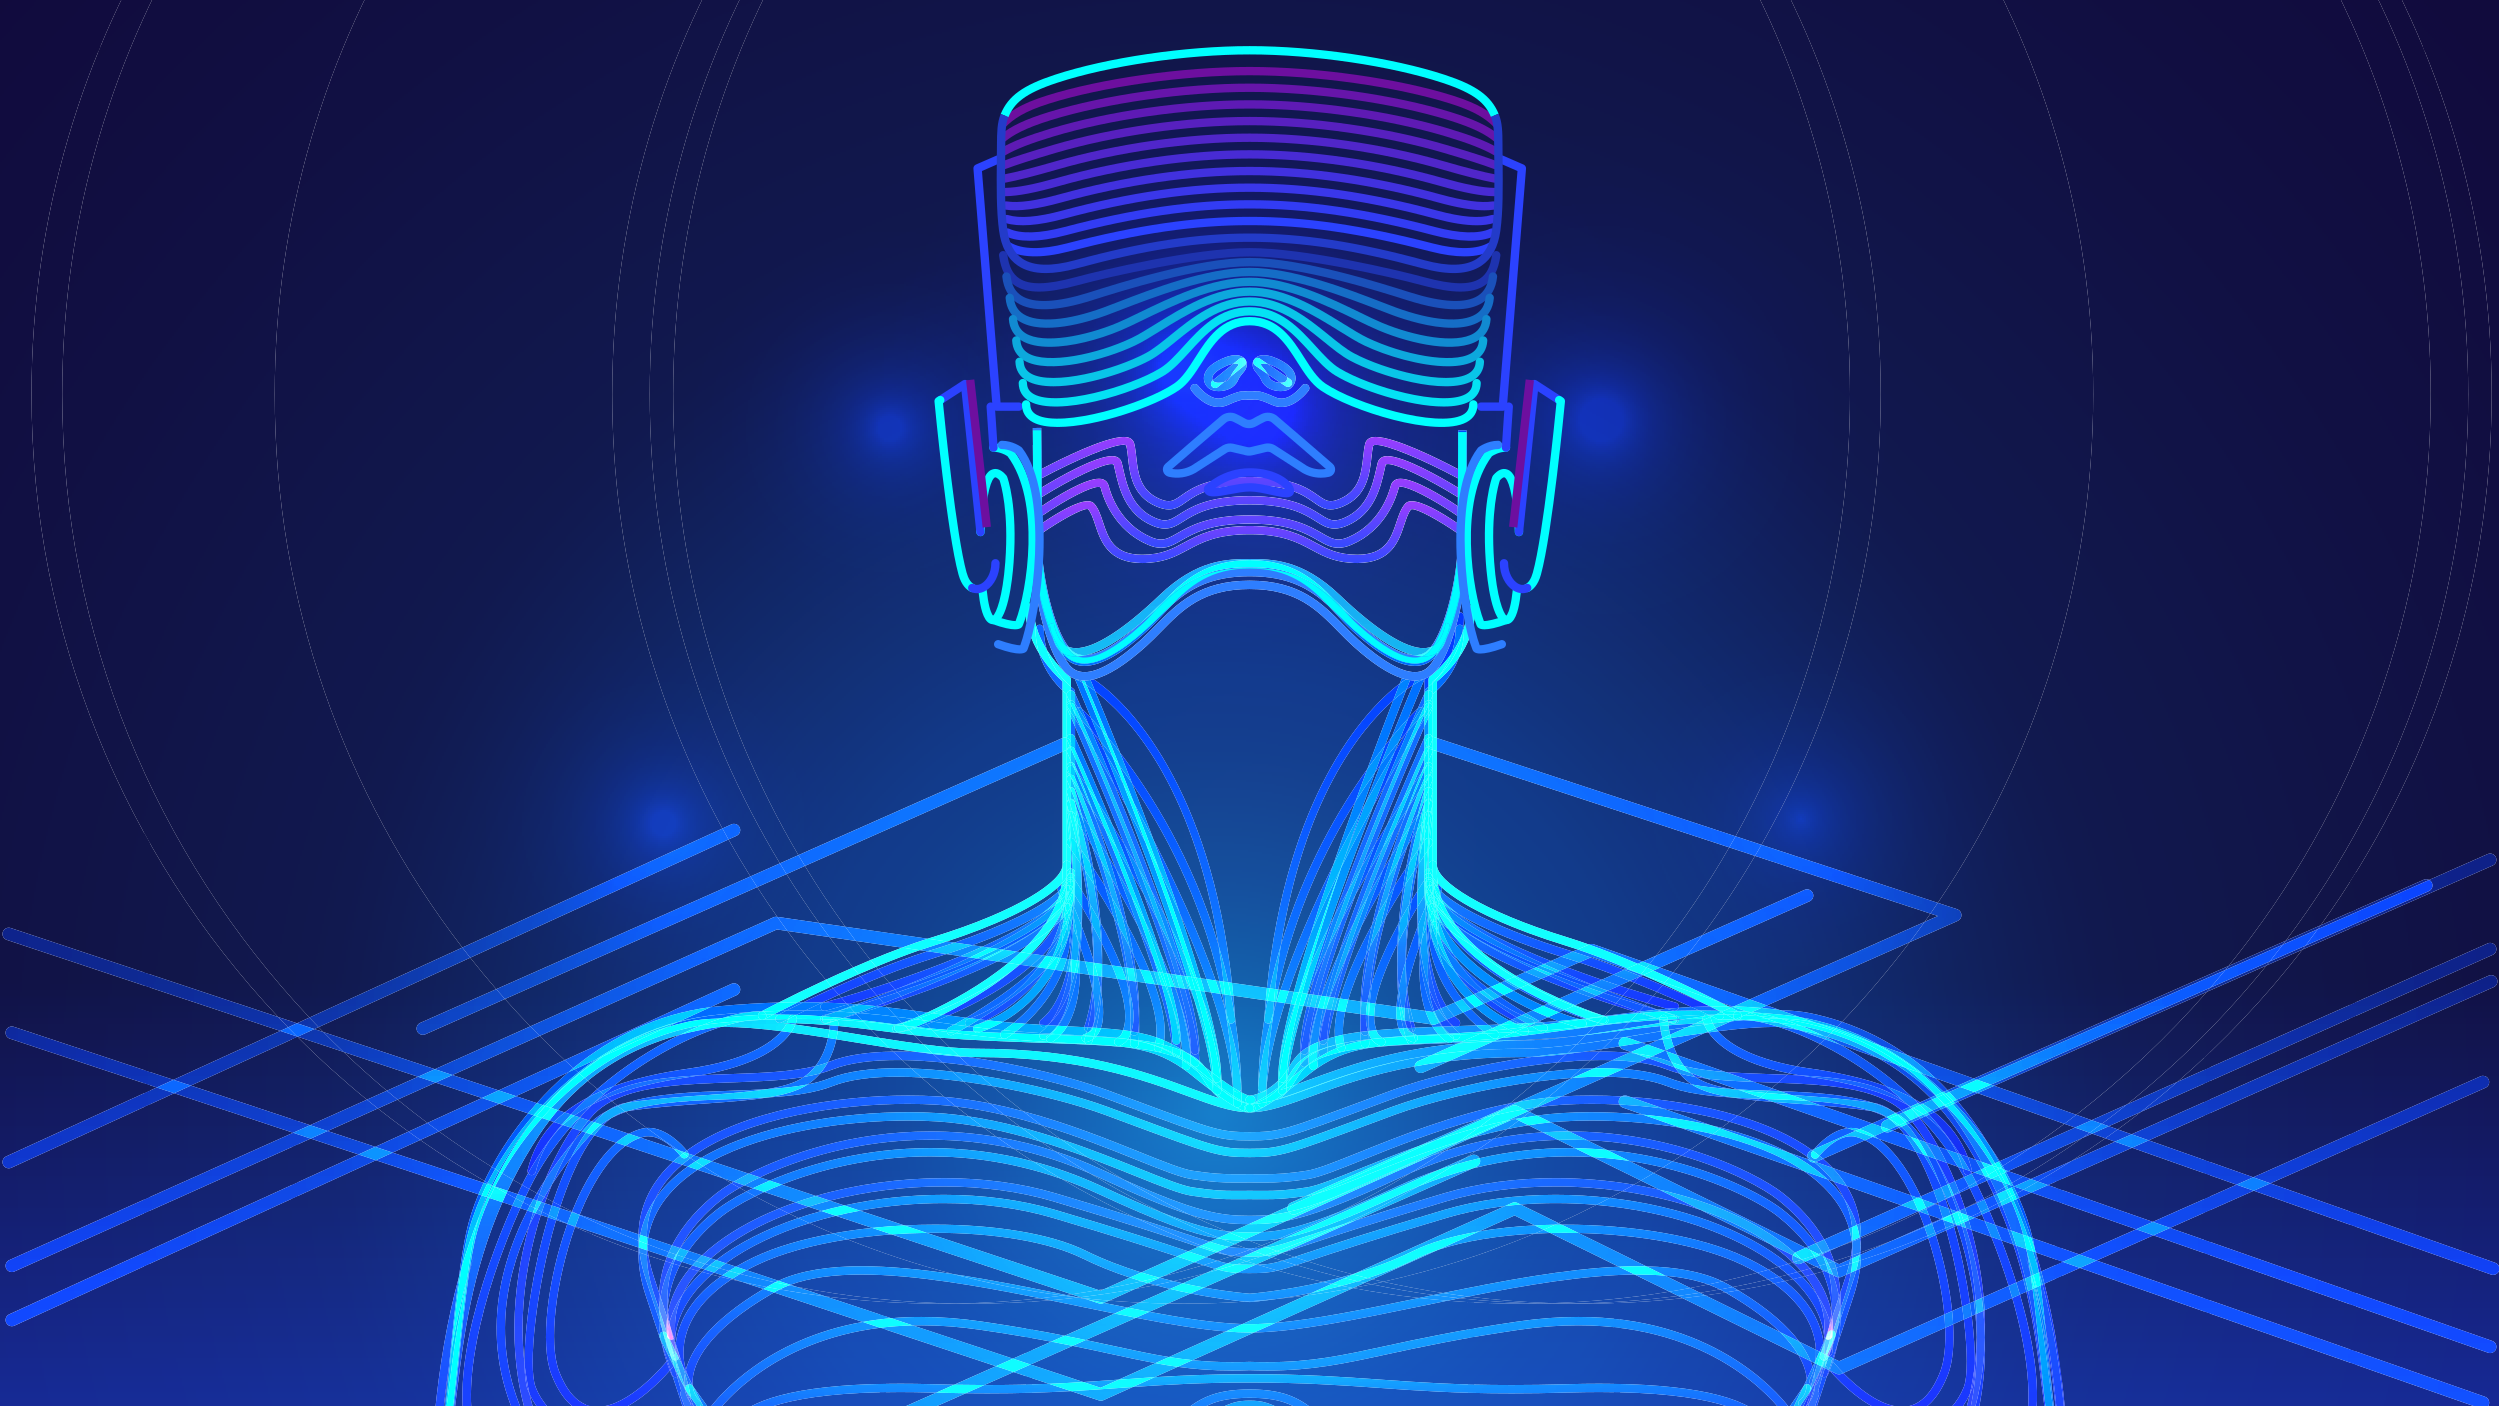 Image of a person wearing a VR headset surrounded by lines